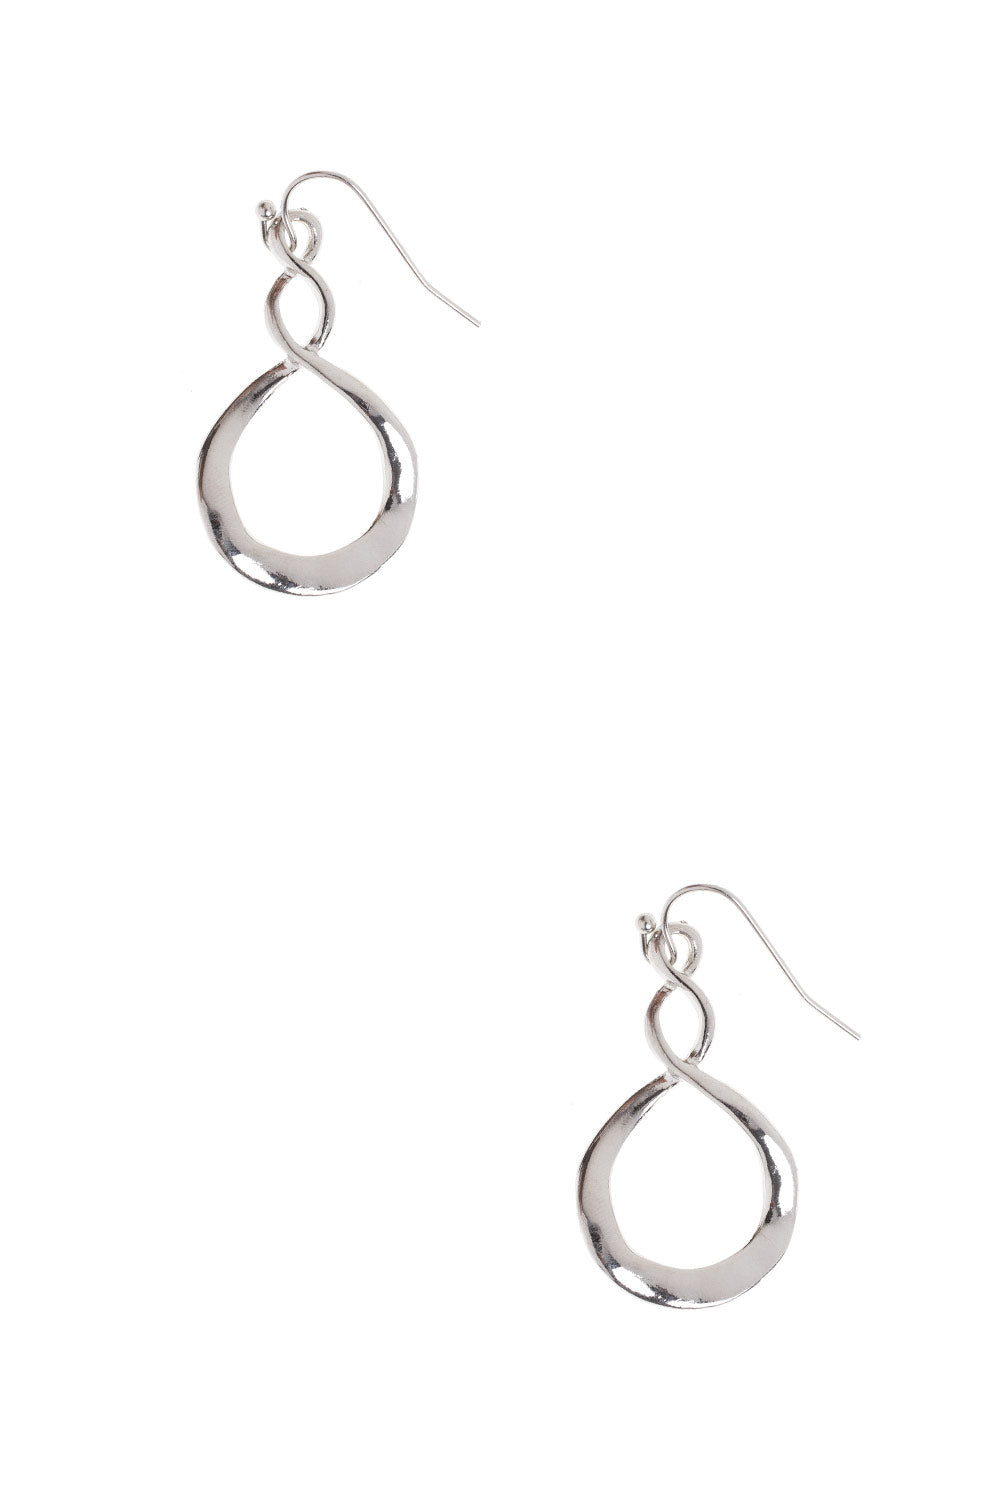 Turn of Phrase Earrings